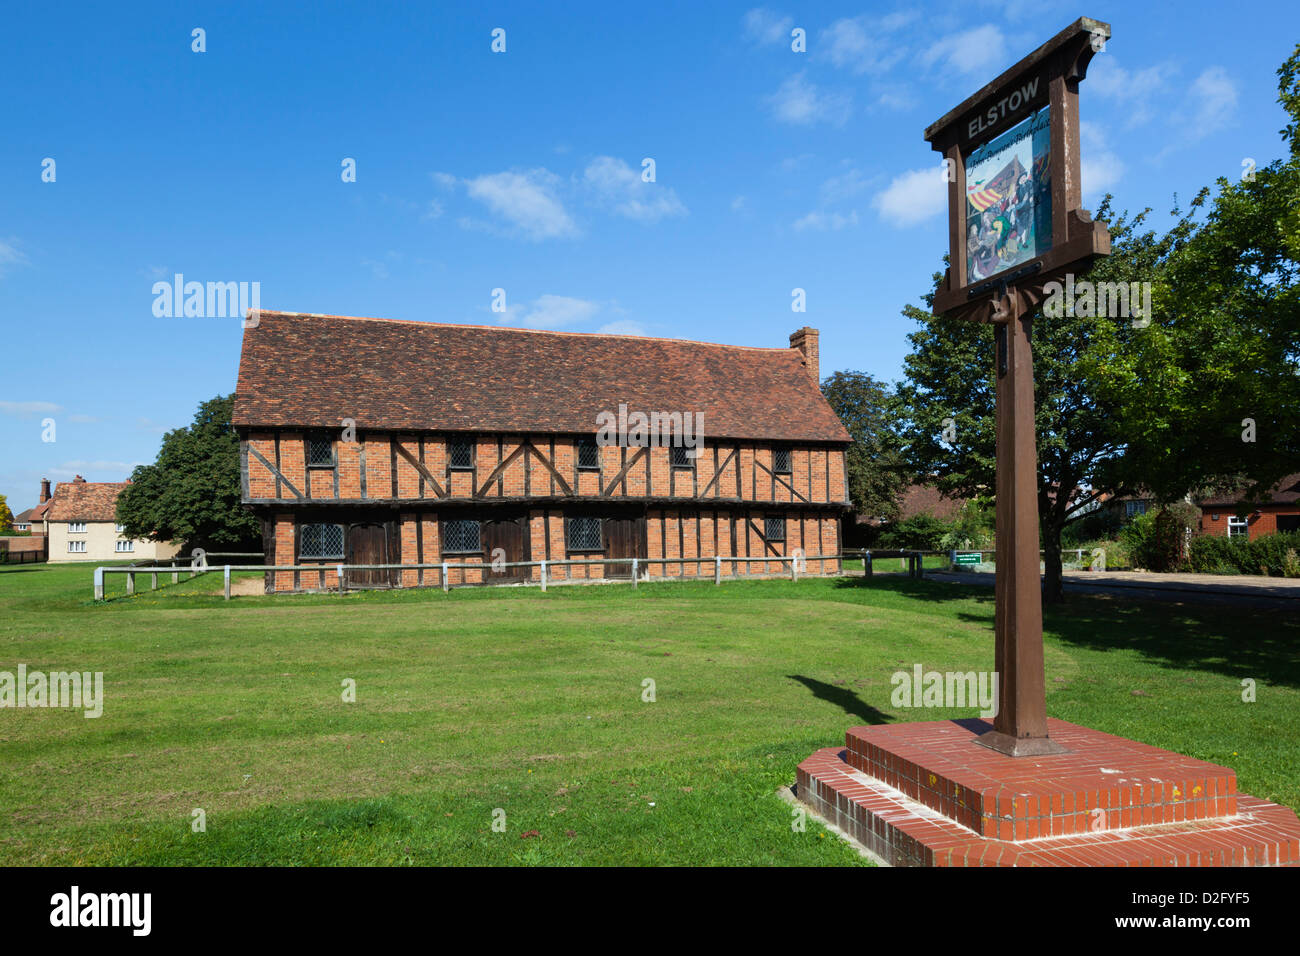 Elstow Moot Hall, 15th century Market house on Elstow Green - Stock Image